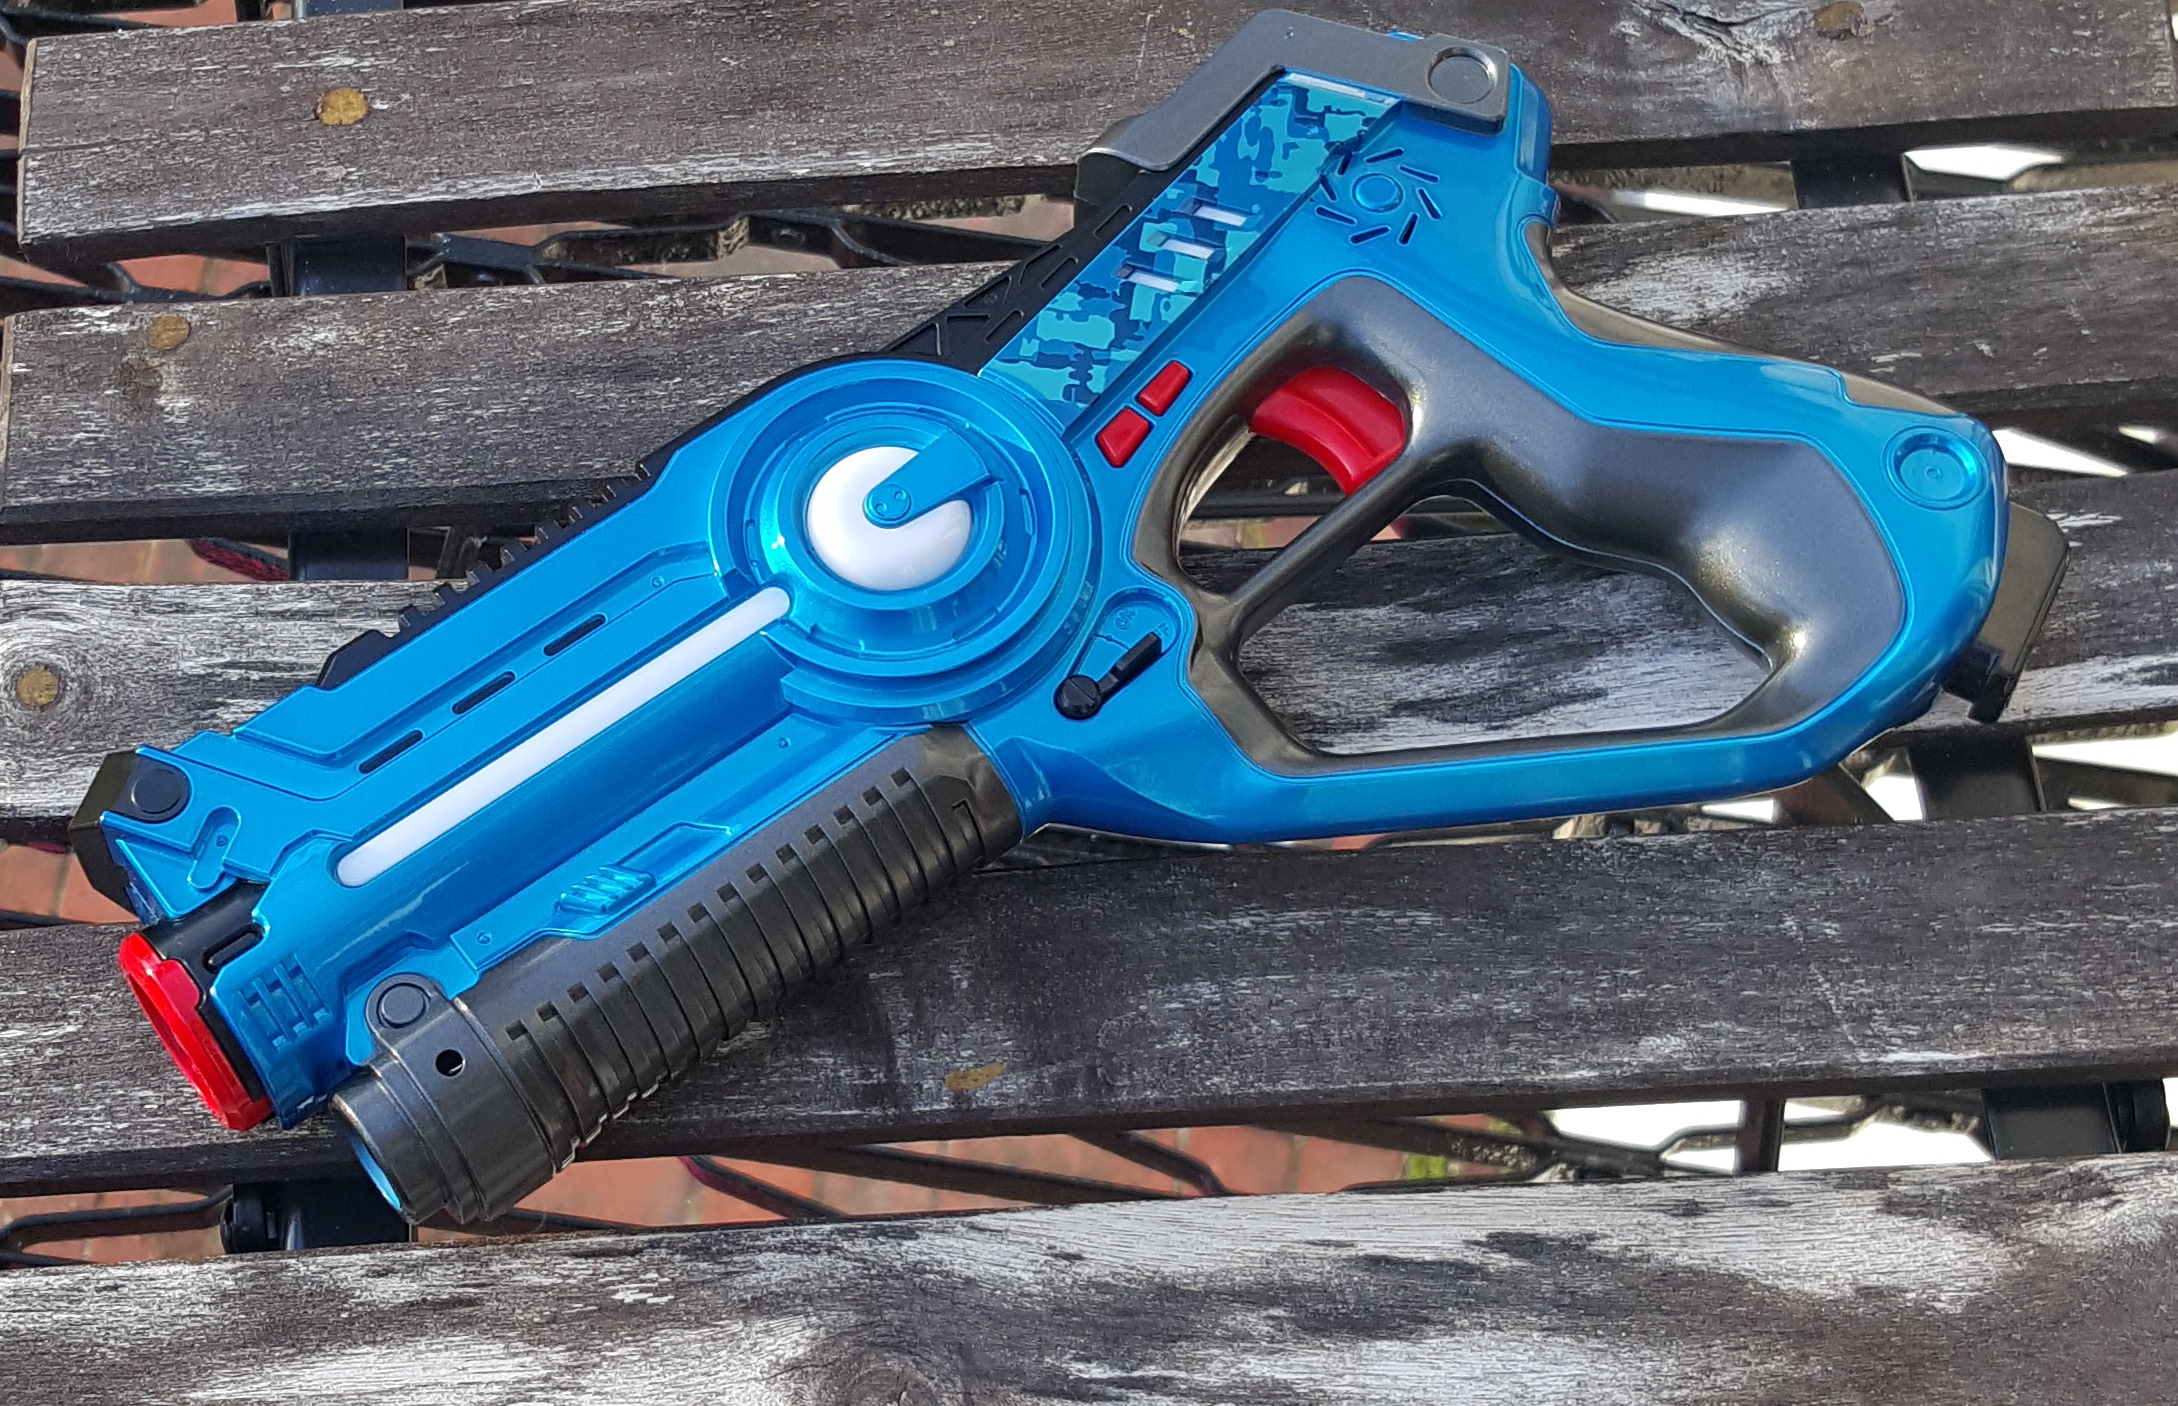 One of our laser Tag Blasters. Great for gameplay with up to 4 teams!